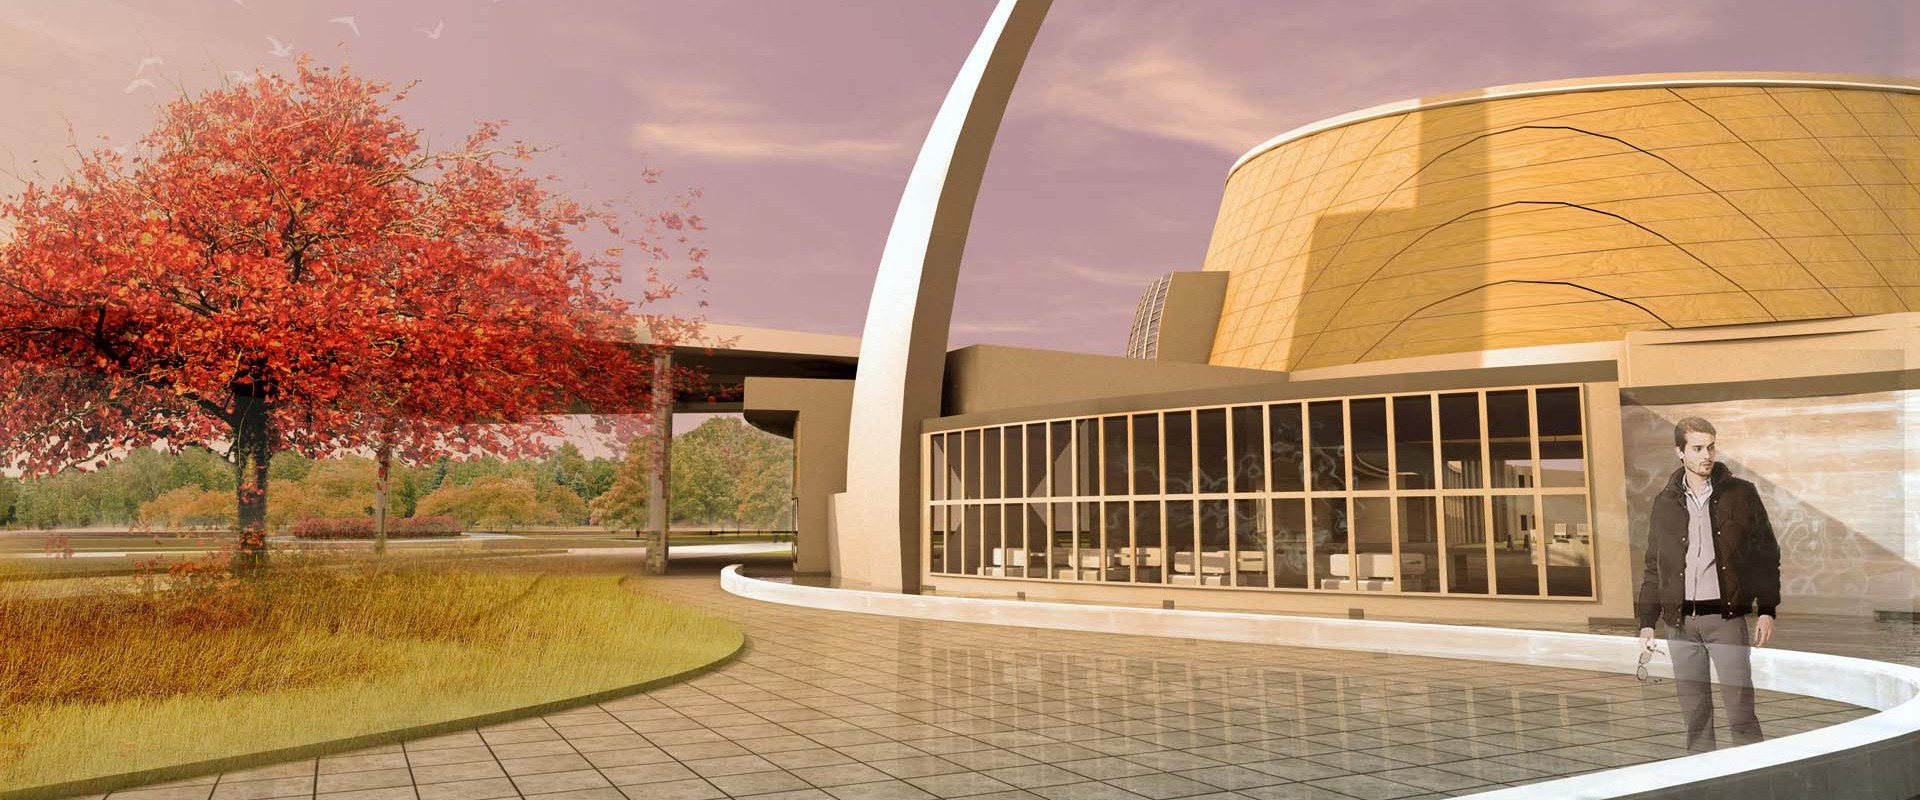 Church Patio Architectural Rendering